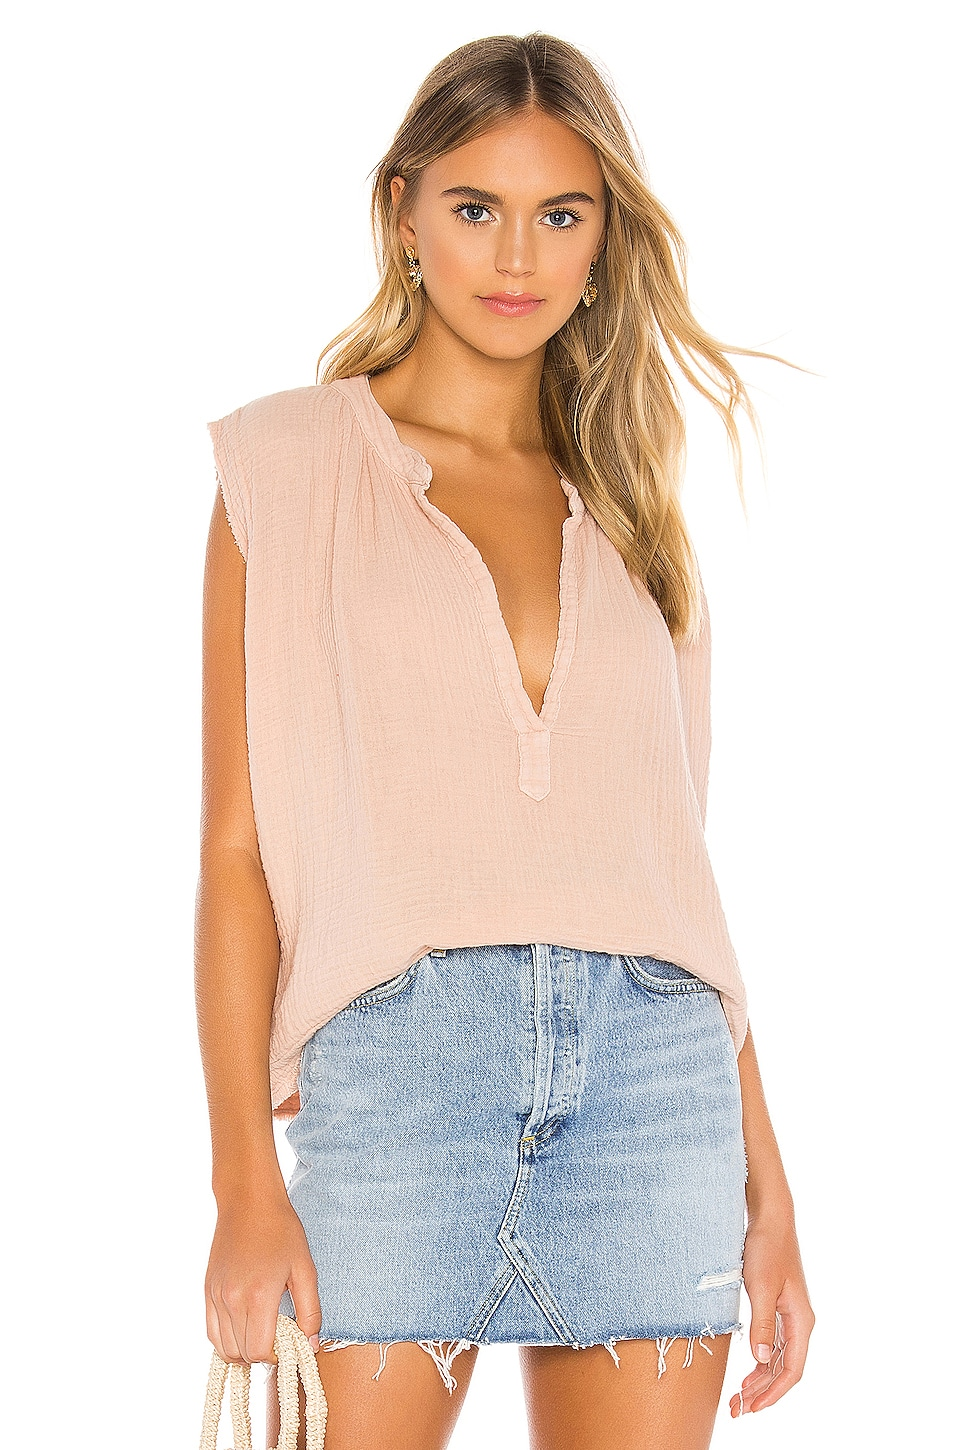 9 Seed Idyllwild Sleeveless Top in Dusty Rose